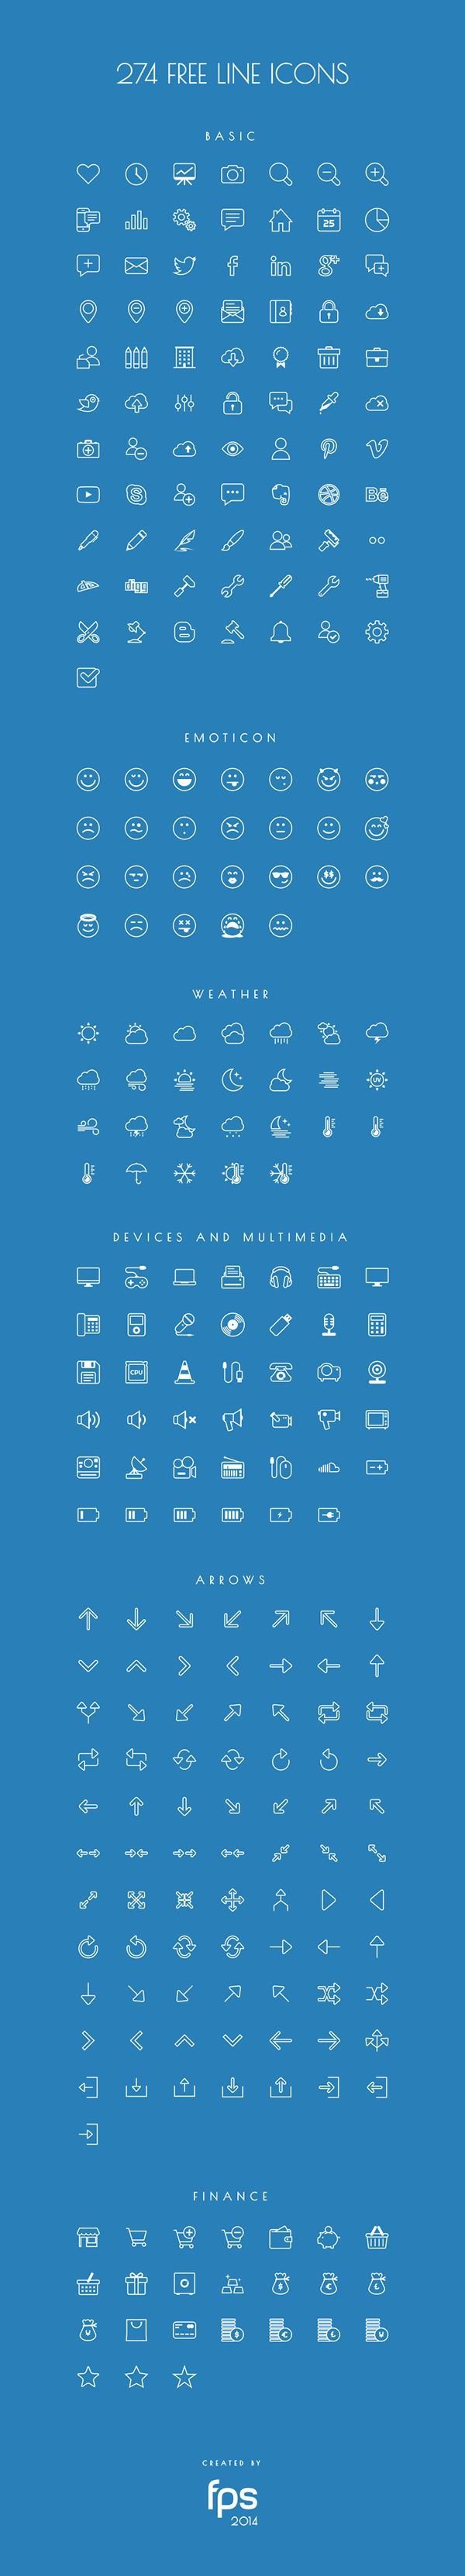 mens designer clothes online outlet 274 Vector Line Icons for free on Behance